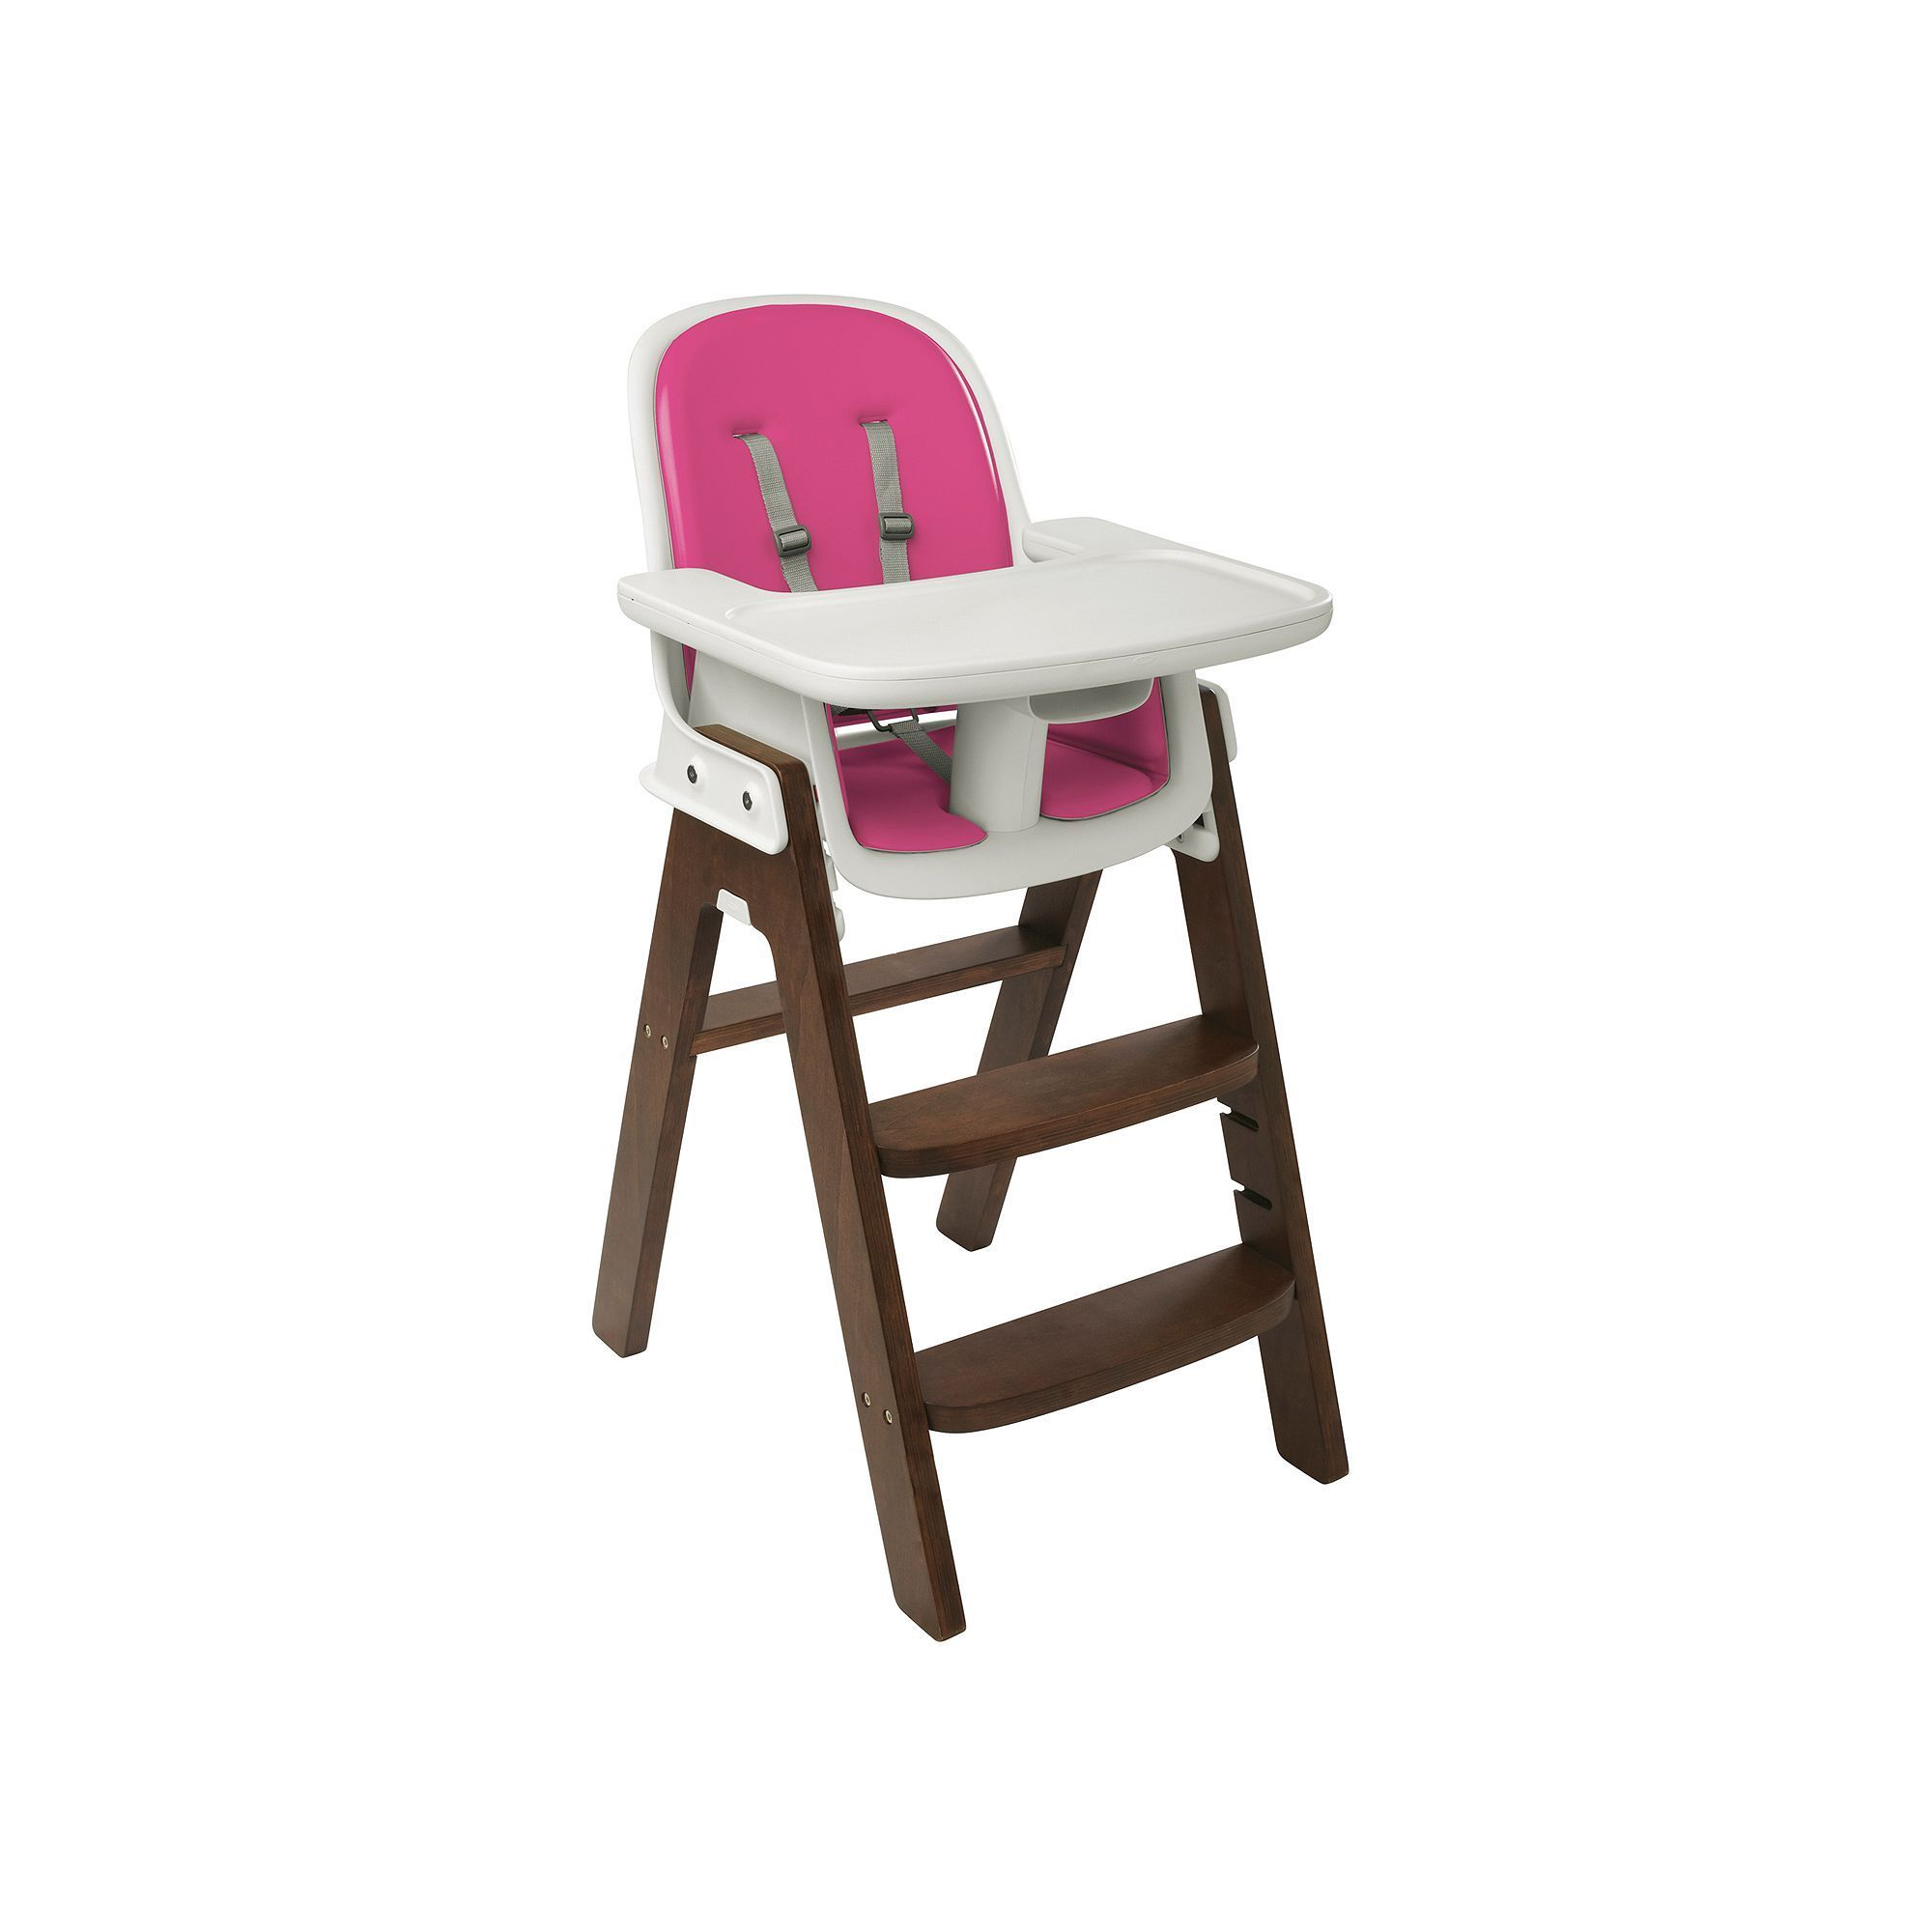 Kohls Folding Chairs Oxo Tot Sprout High Chair Products Best High Chairs Chair